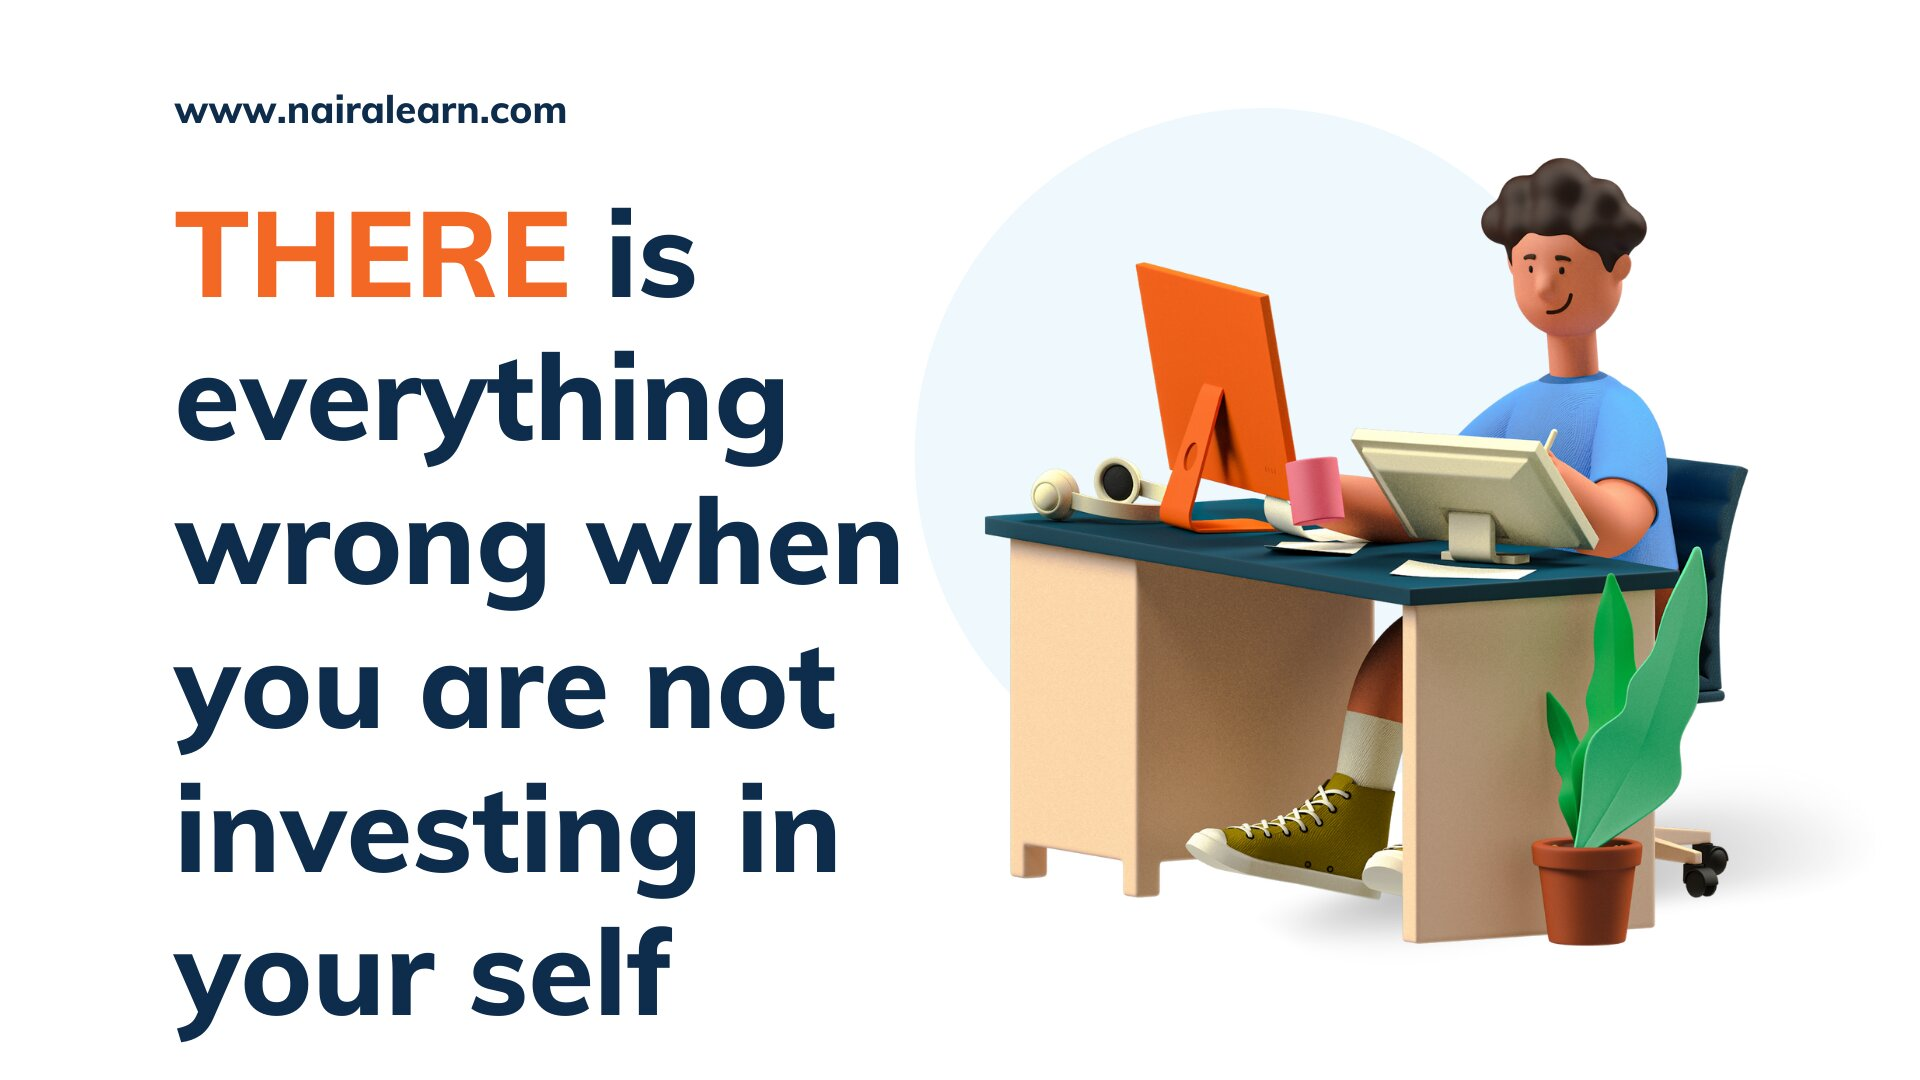 there is everything wrong when you are not investing in your self